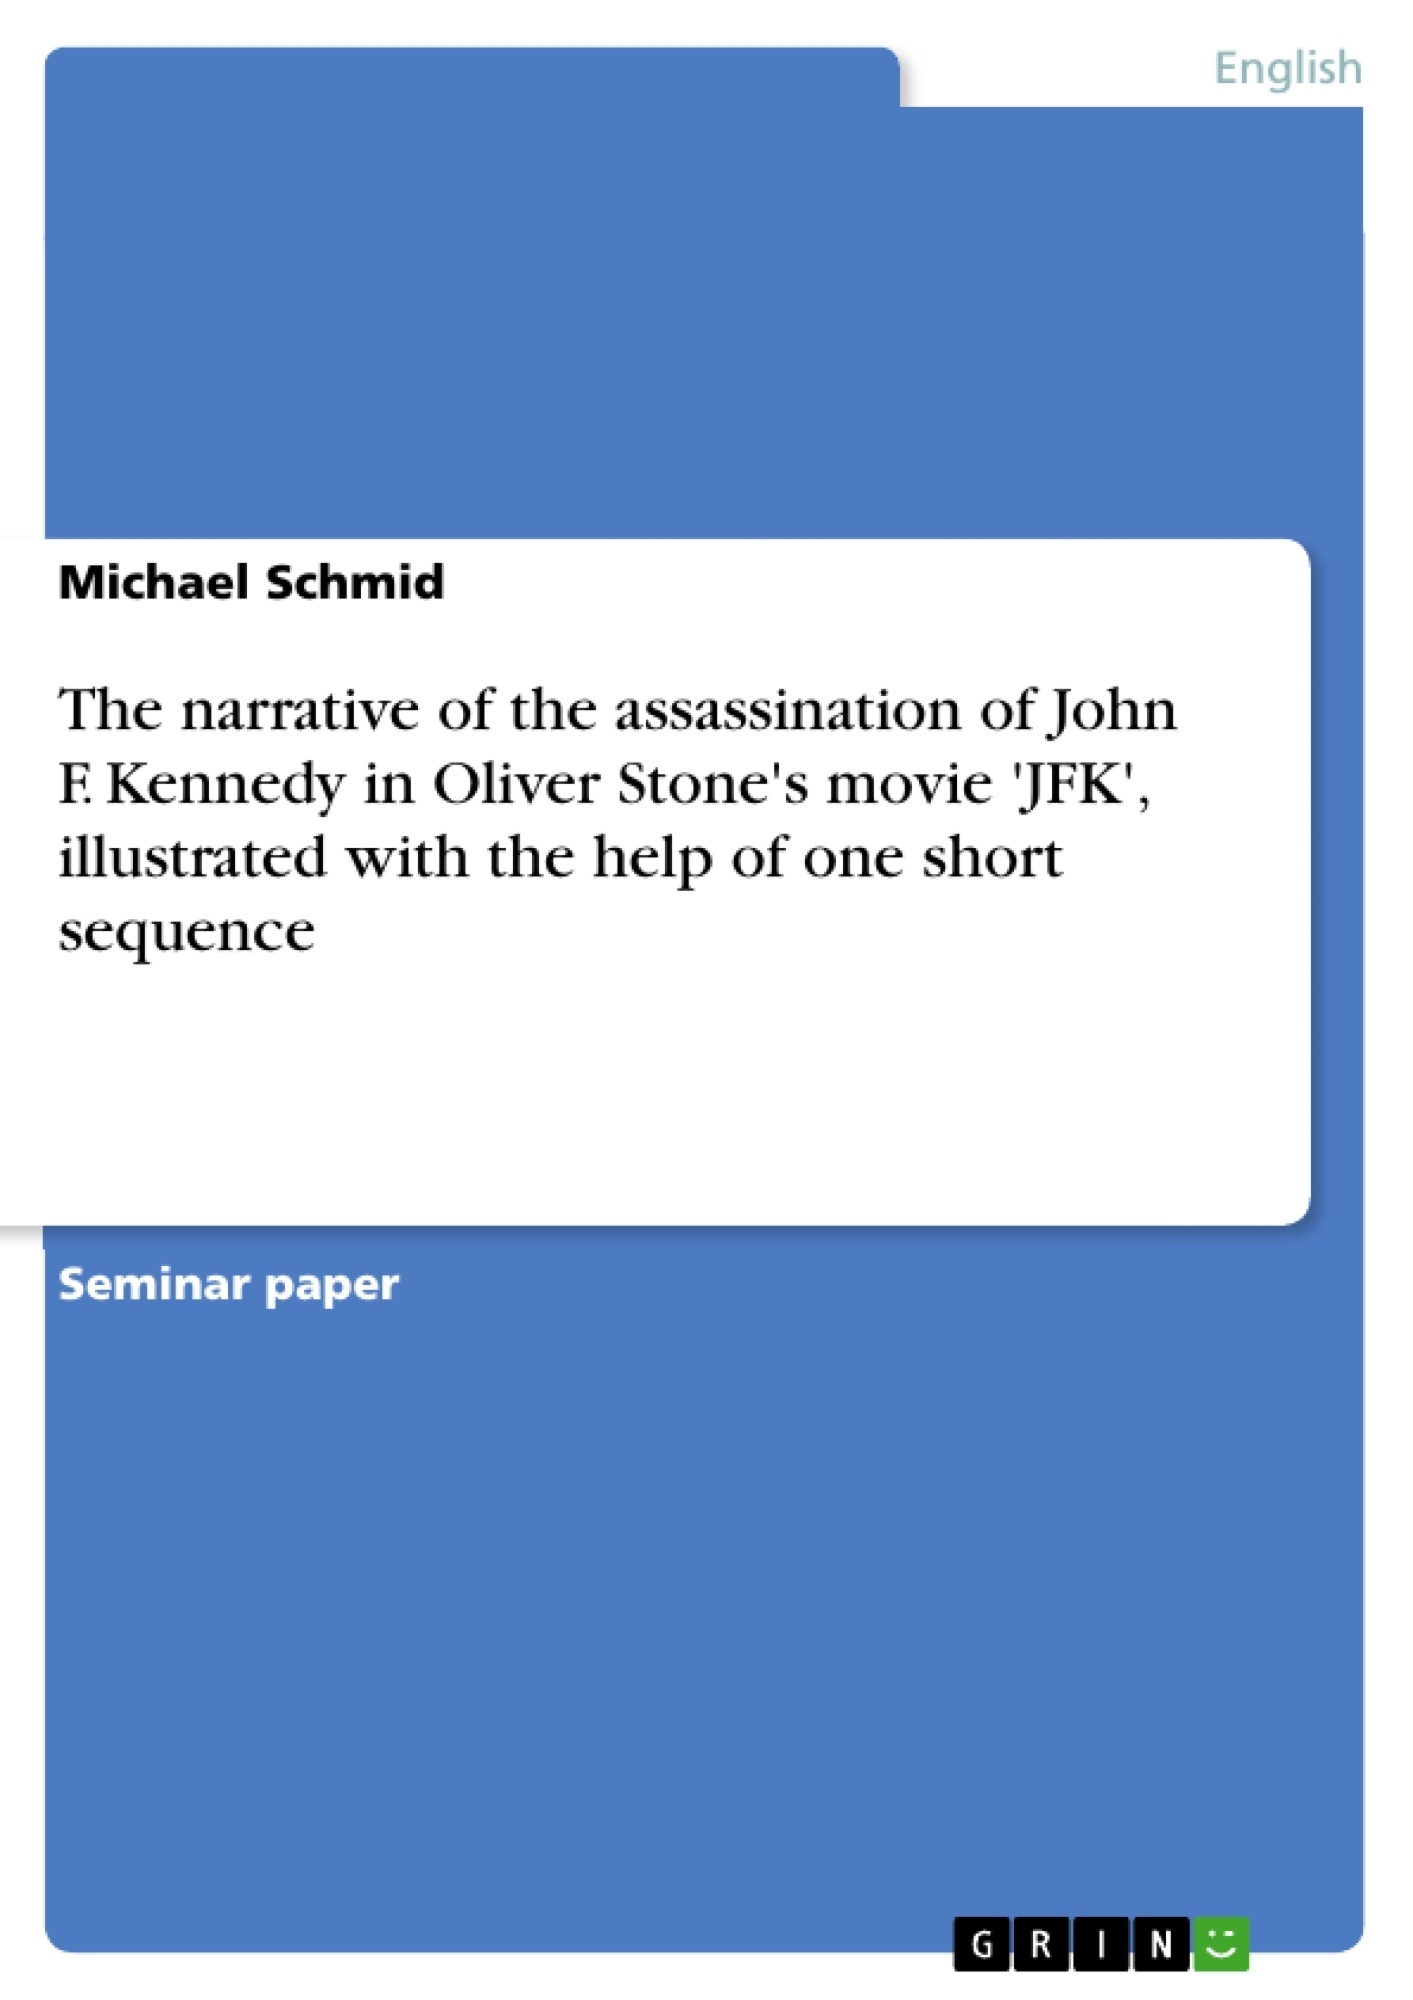 Grin The Narrative Of The Assassination Of John F Kennedy In Oliver Stones Movie Jfk Illustrated With The Help Of One Short Sequence